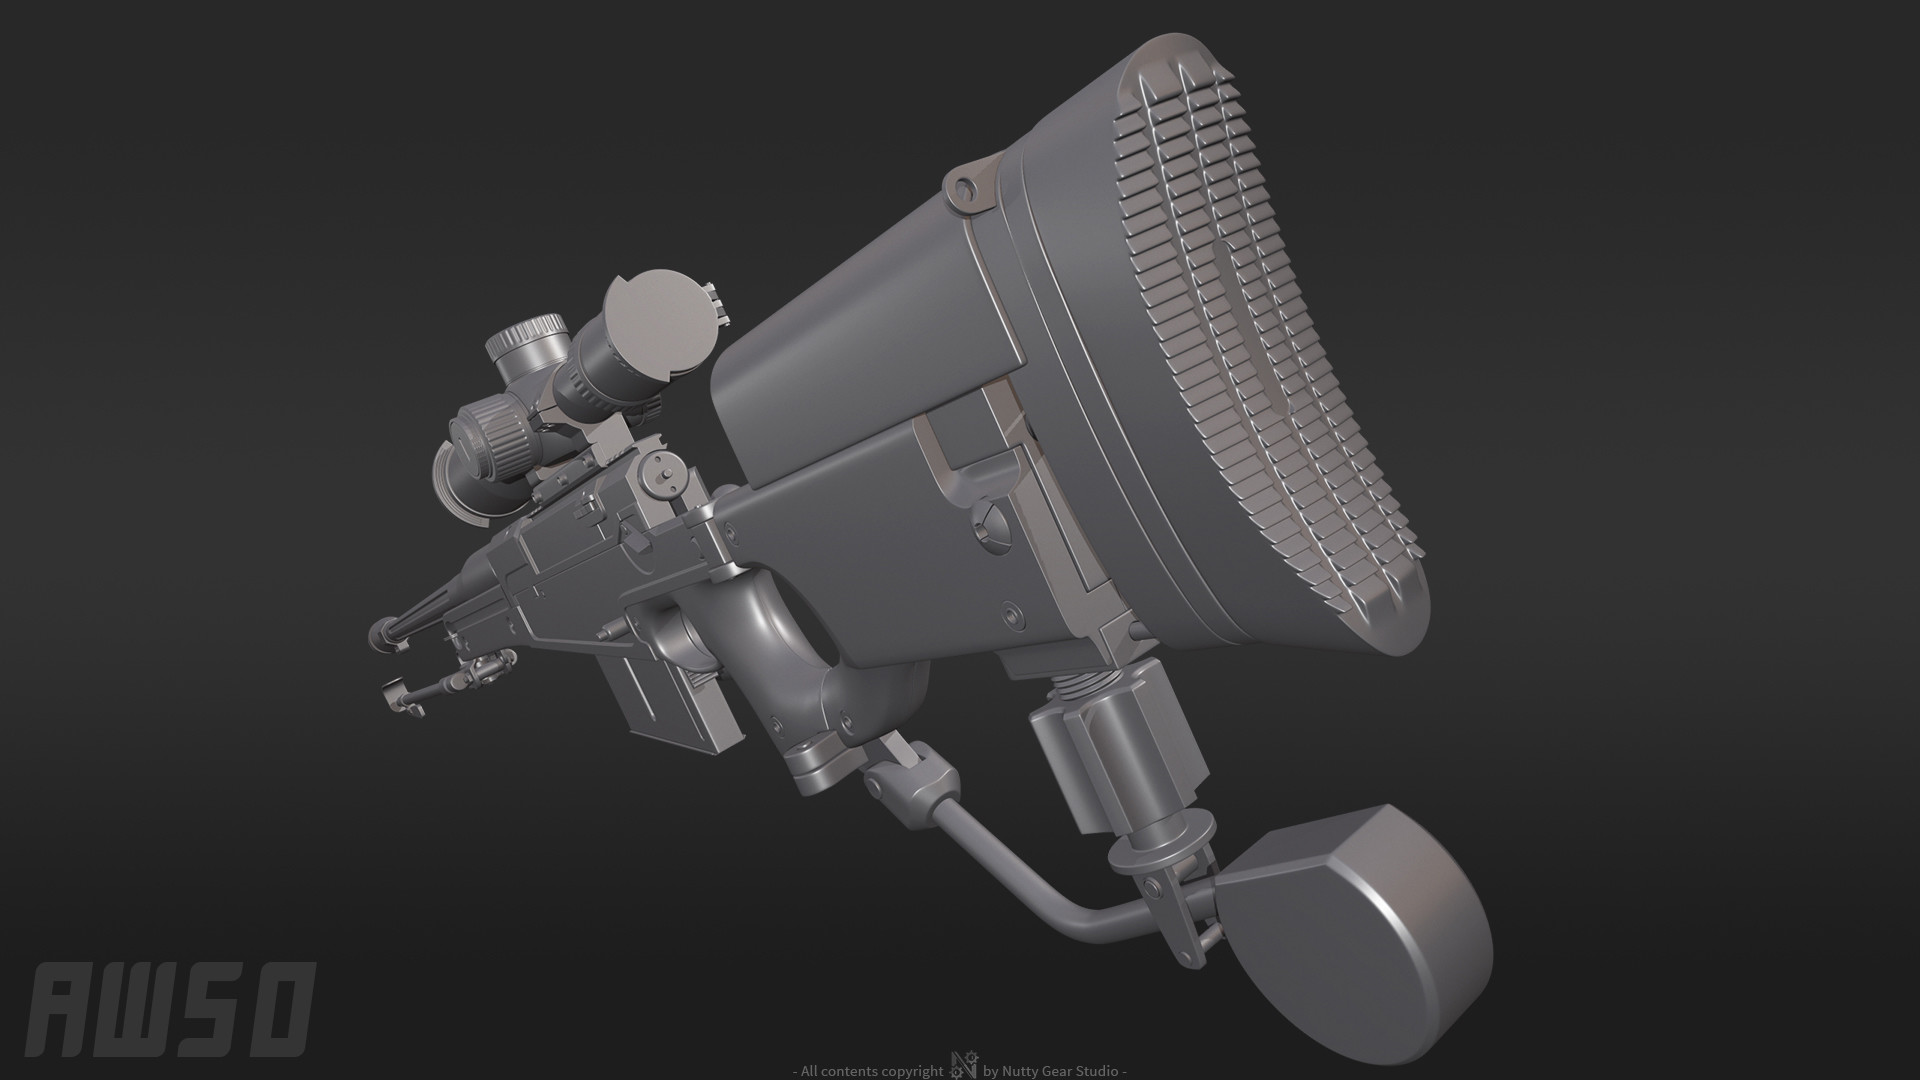 ArtStation - Accuracy International AW50 with modifications \ 12,7